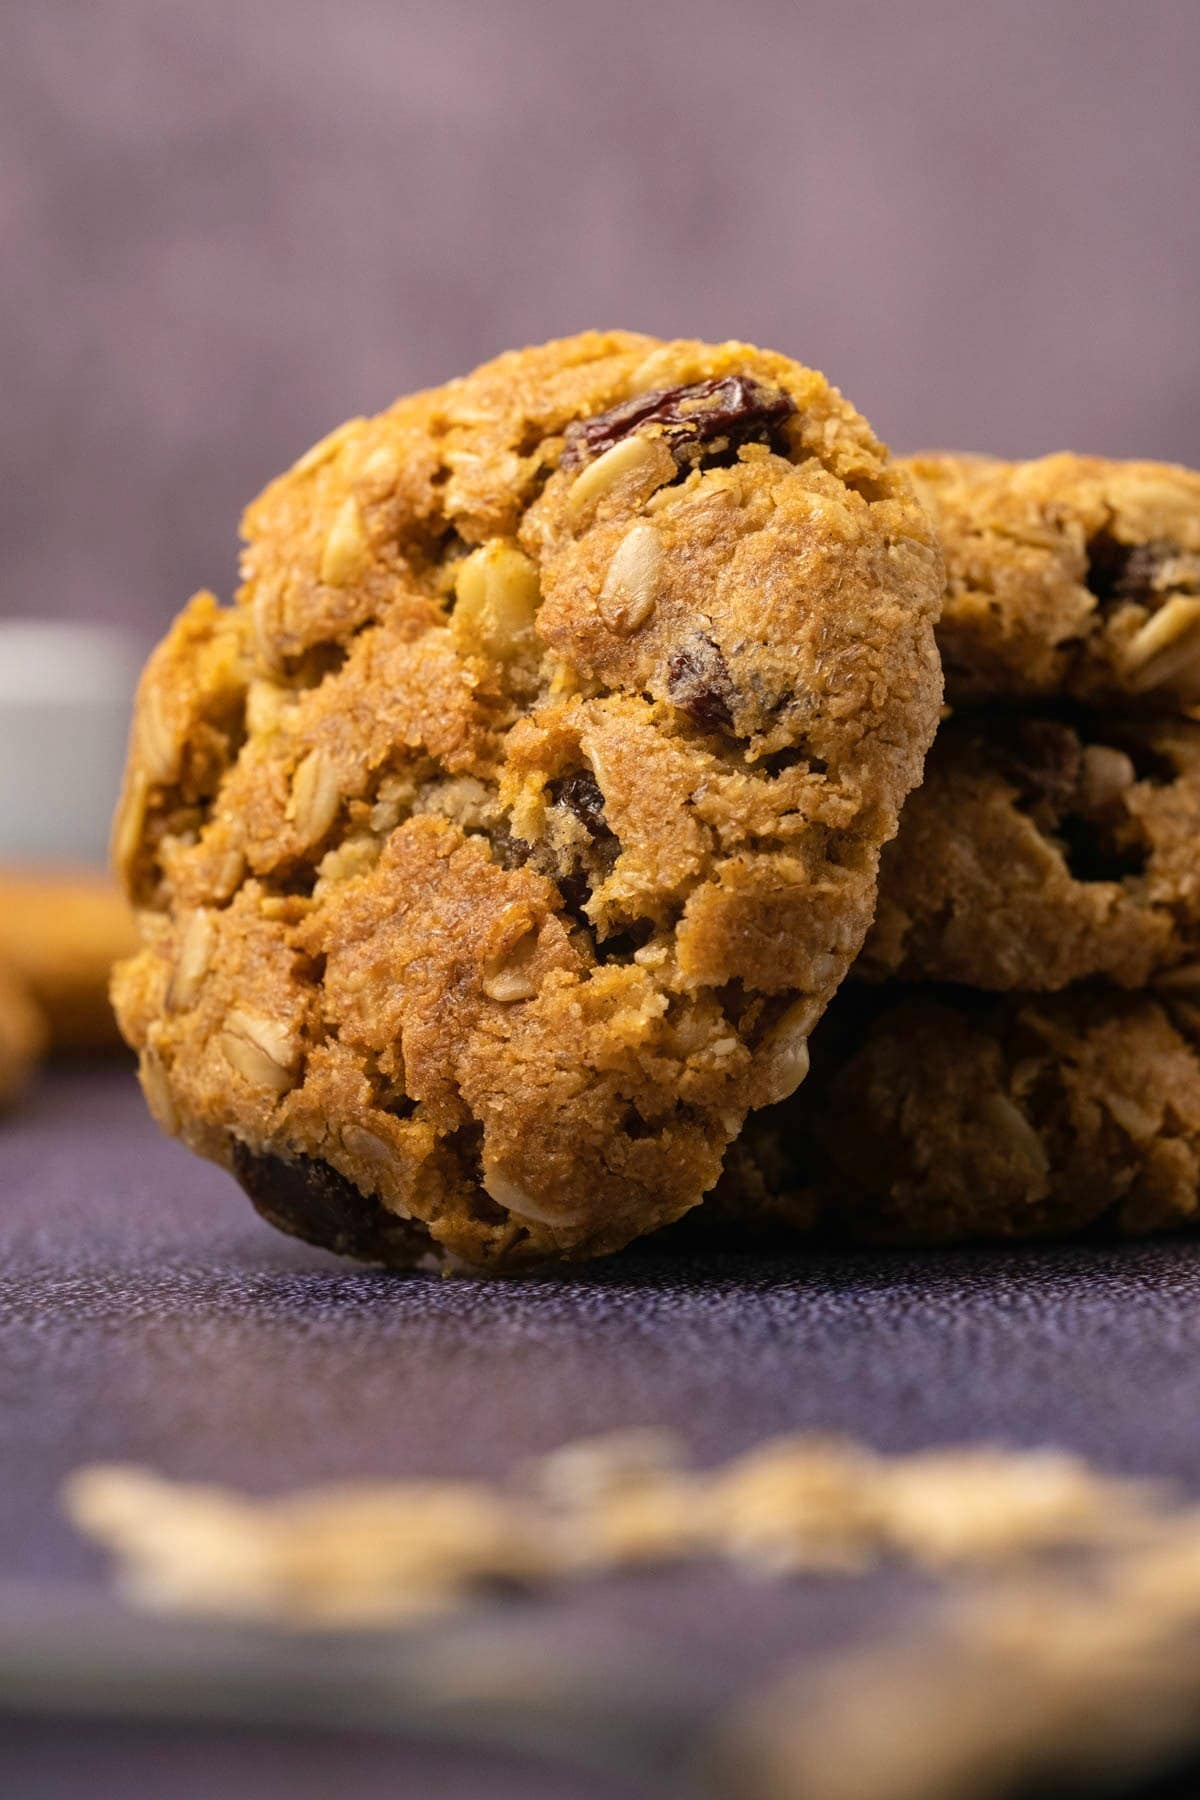 Oatmeal raisin cookie leaning against a stack of three cookies.